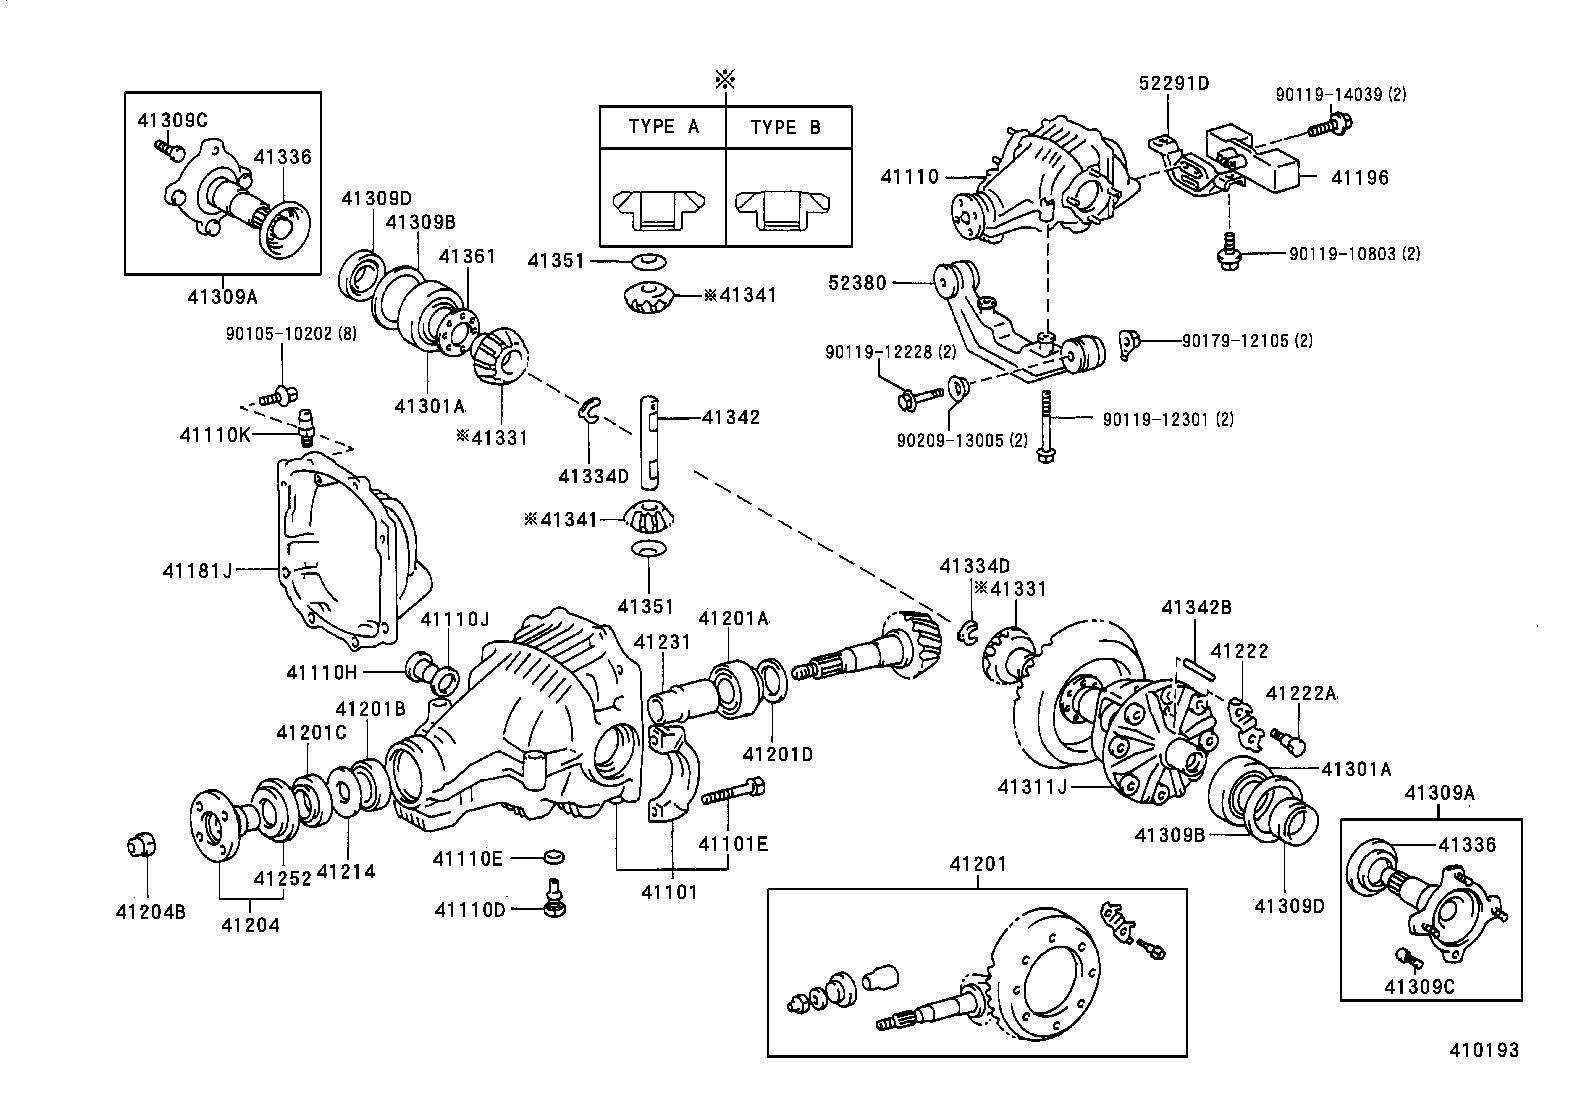 9031135032 Toyota Sienna Rear Differential Support